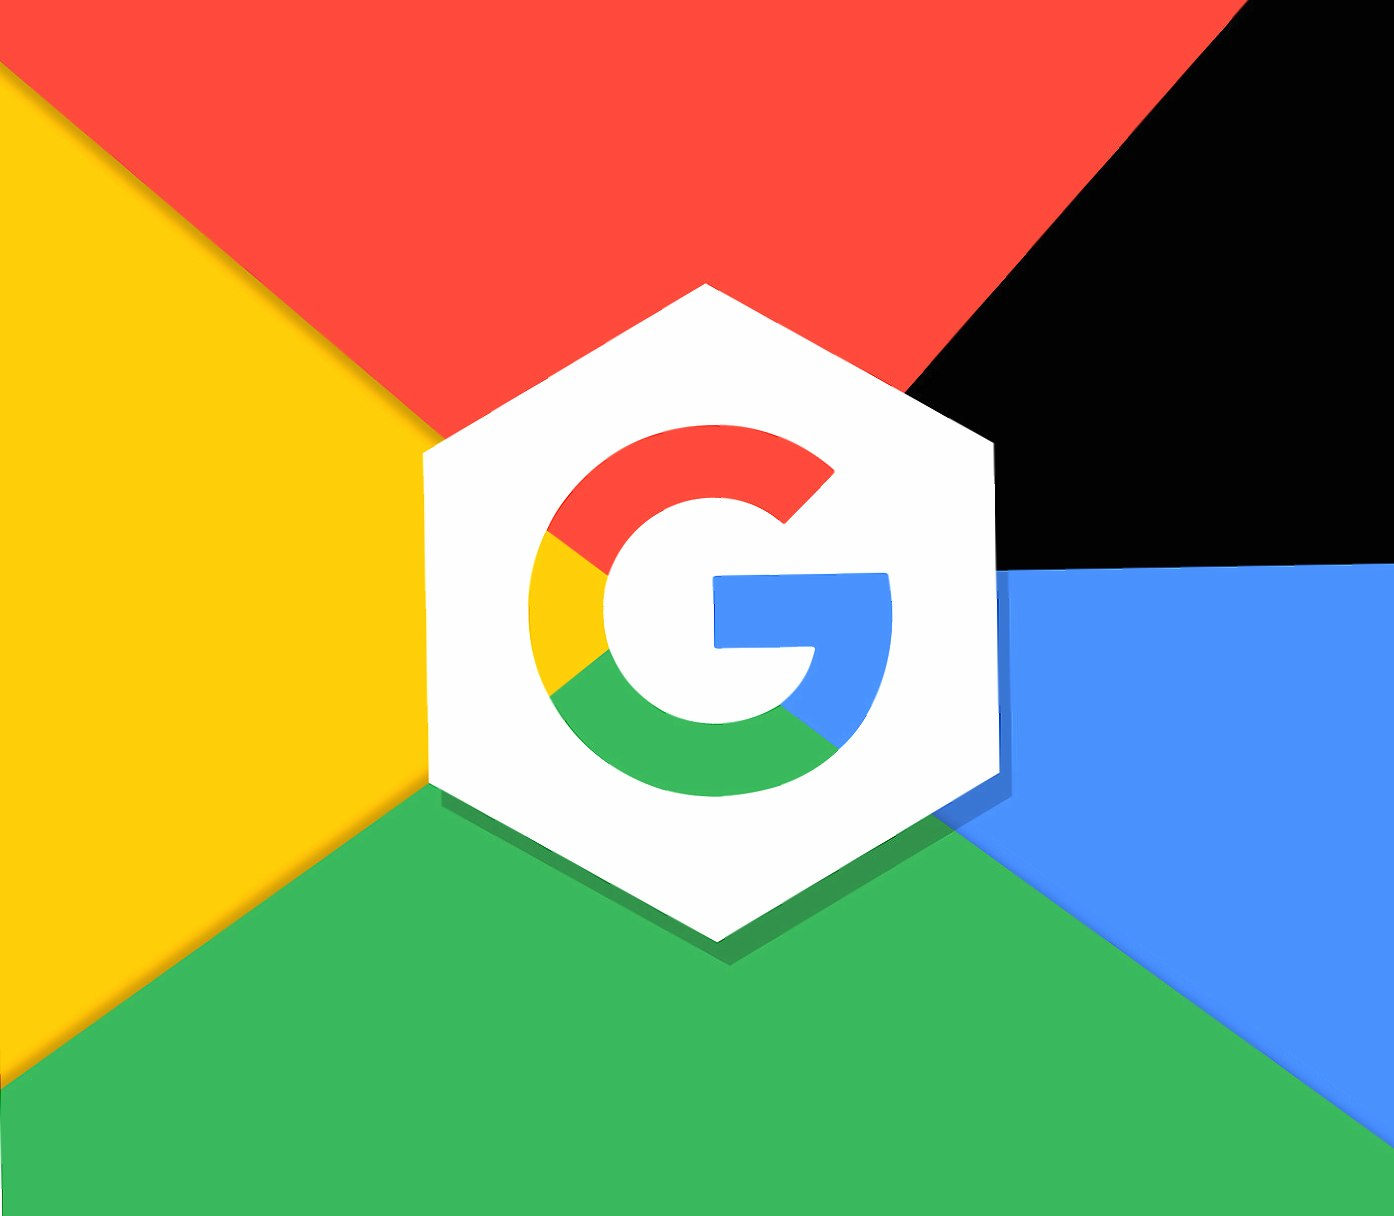 Google hexagonal wallpapers HD quality